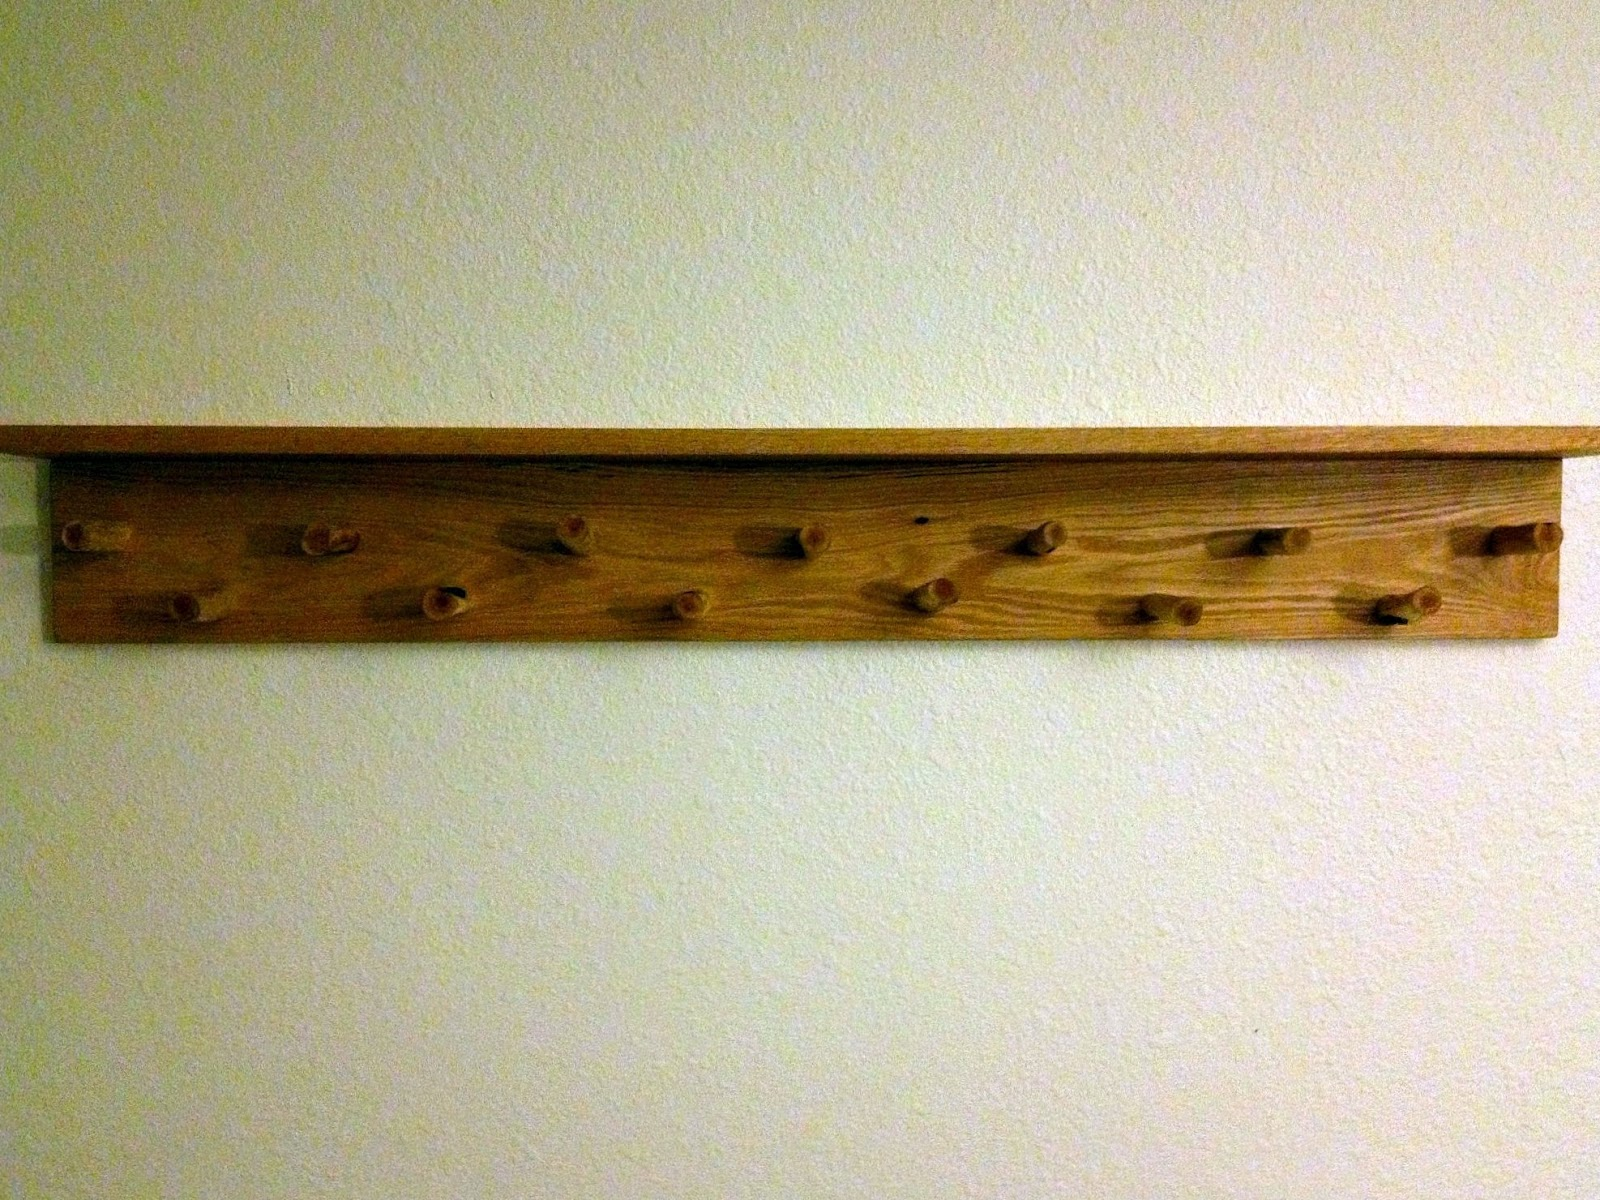 The Modern DIY Life: DIY Wall Hanging Coat Rack